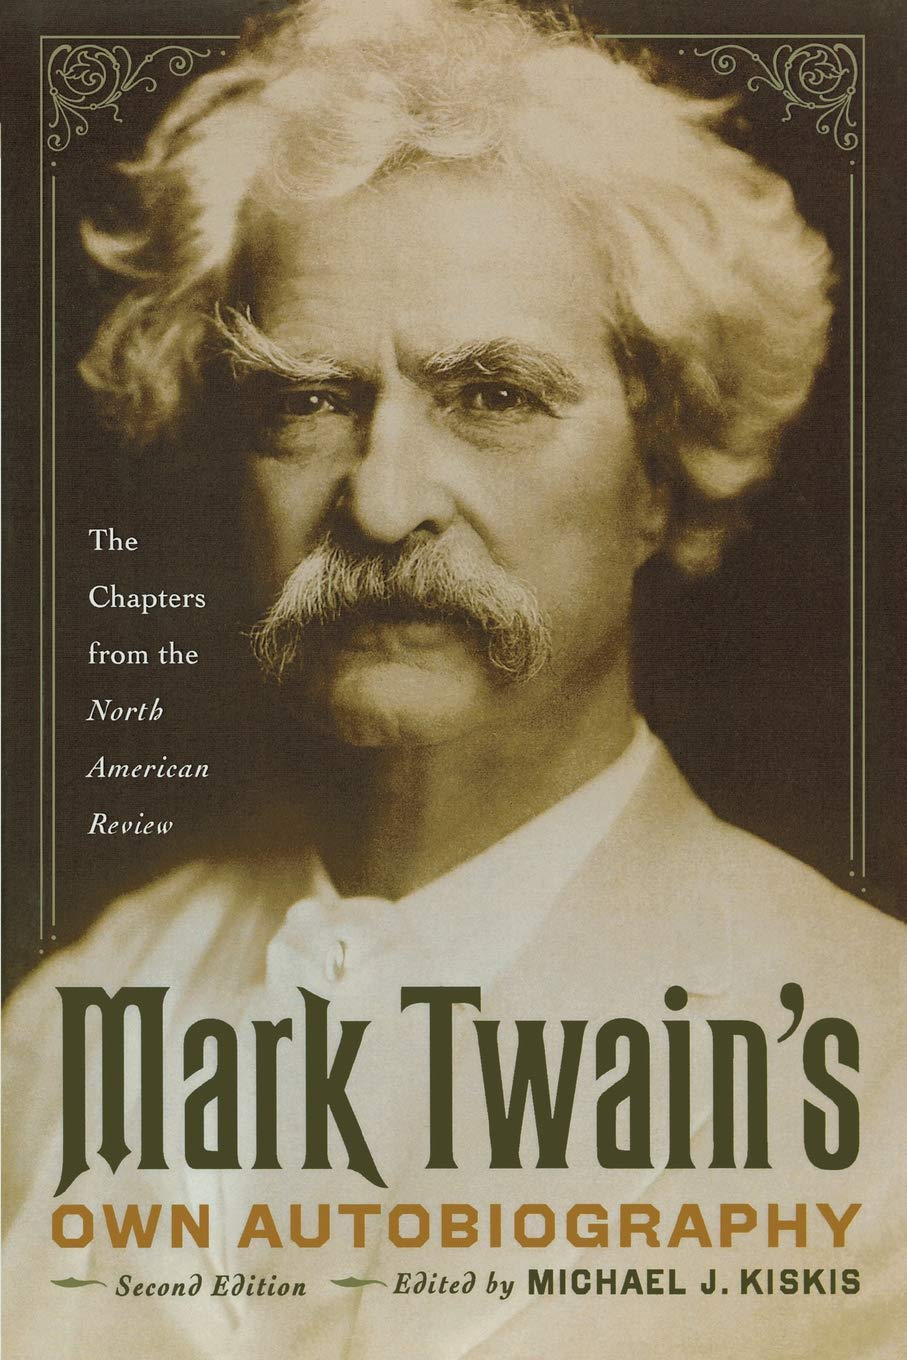 Amazon.com: Mark Twain's Own Autobiography: The Chapters from the North  American Review (Wisconsin Studies in Autobiography) (9780299234744): Mark  Twain, ...